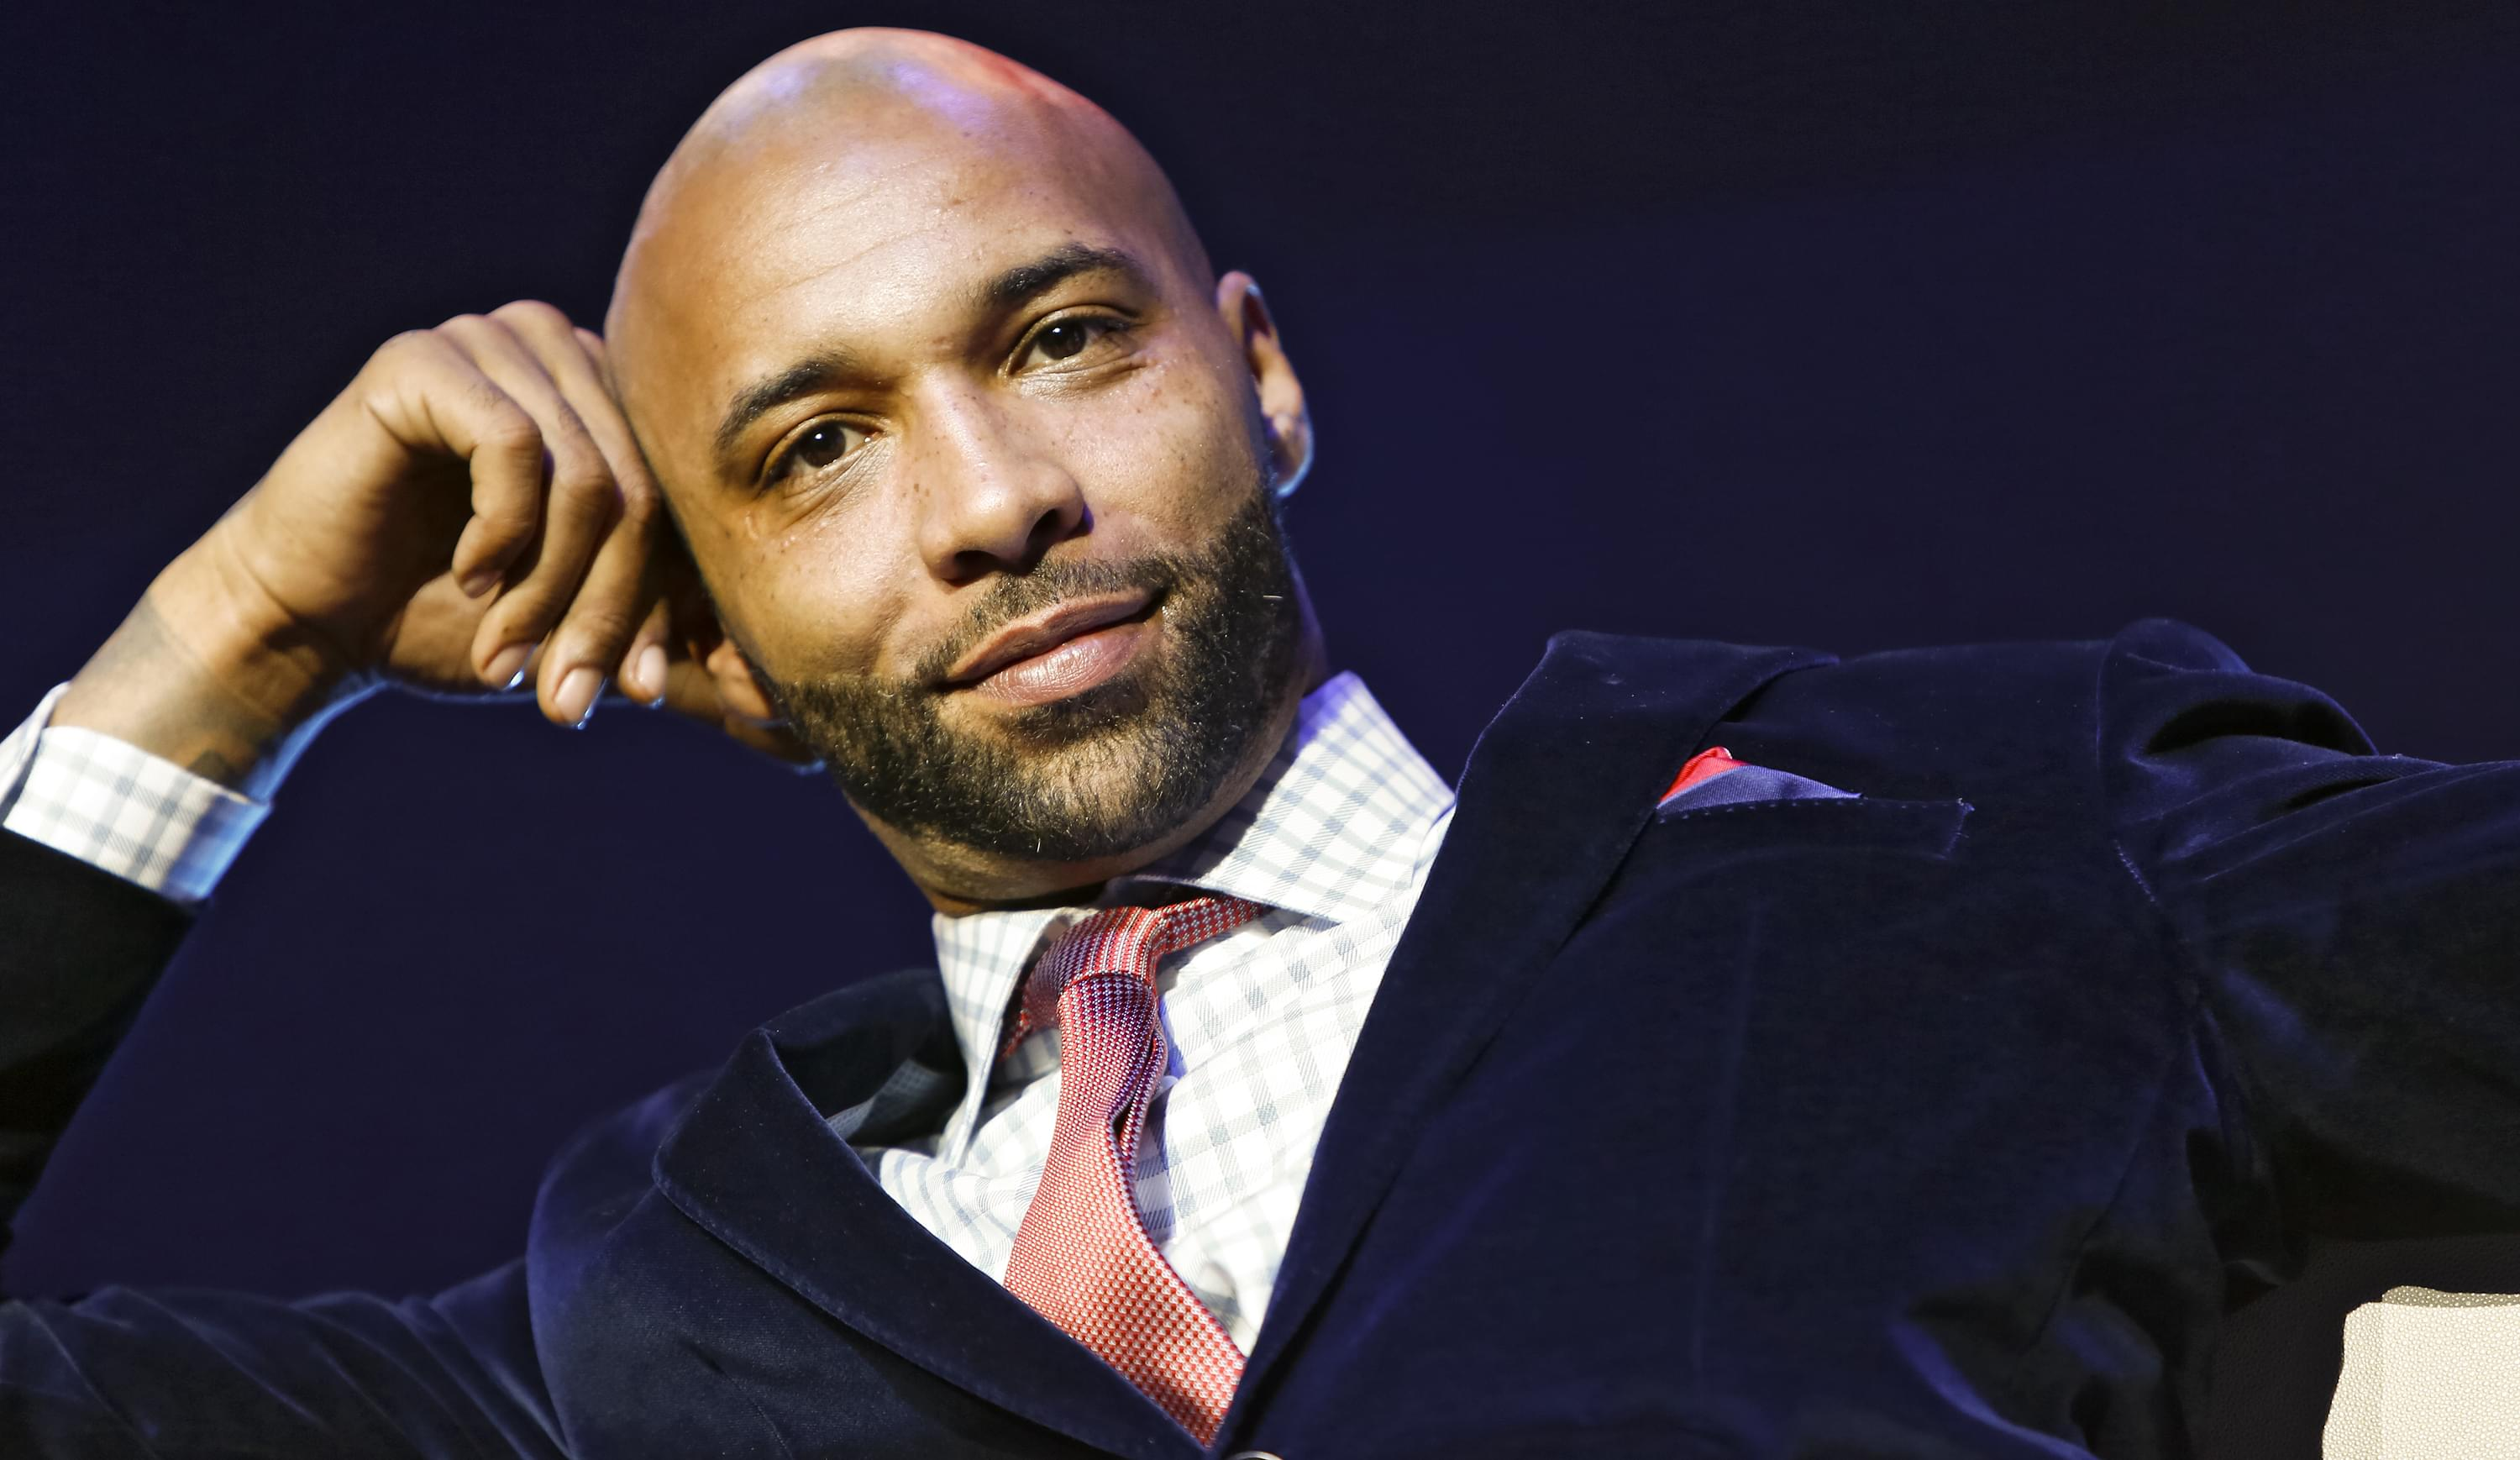 Joe Budden Threatens To Come Out Of Retirement